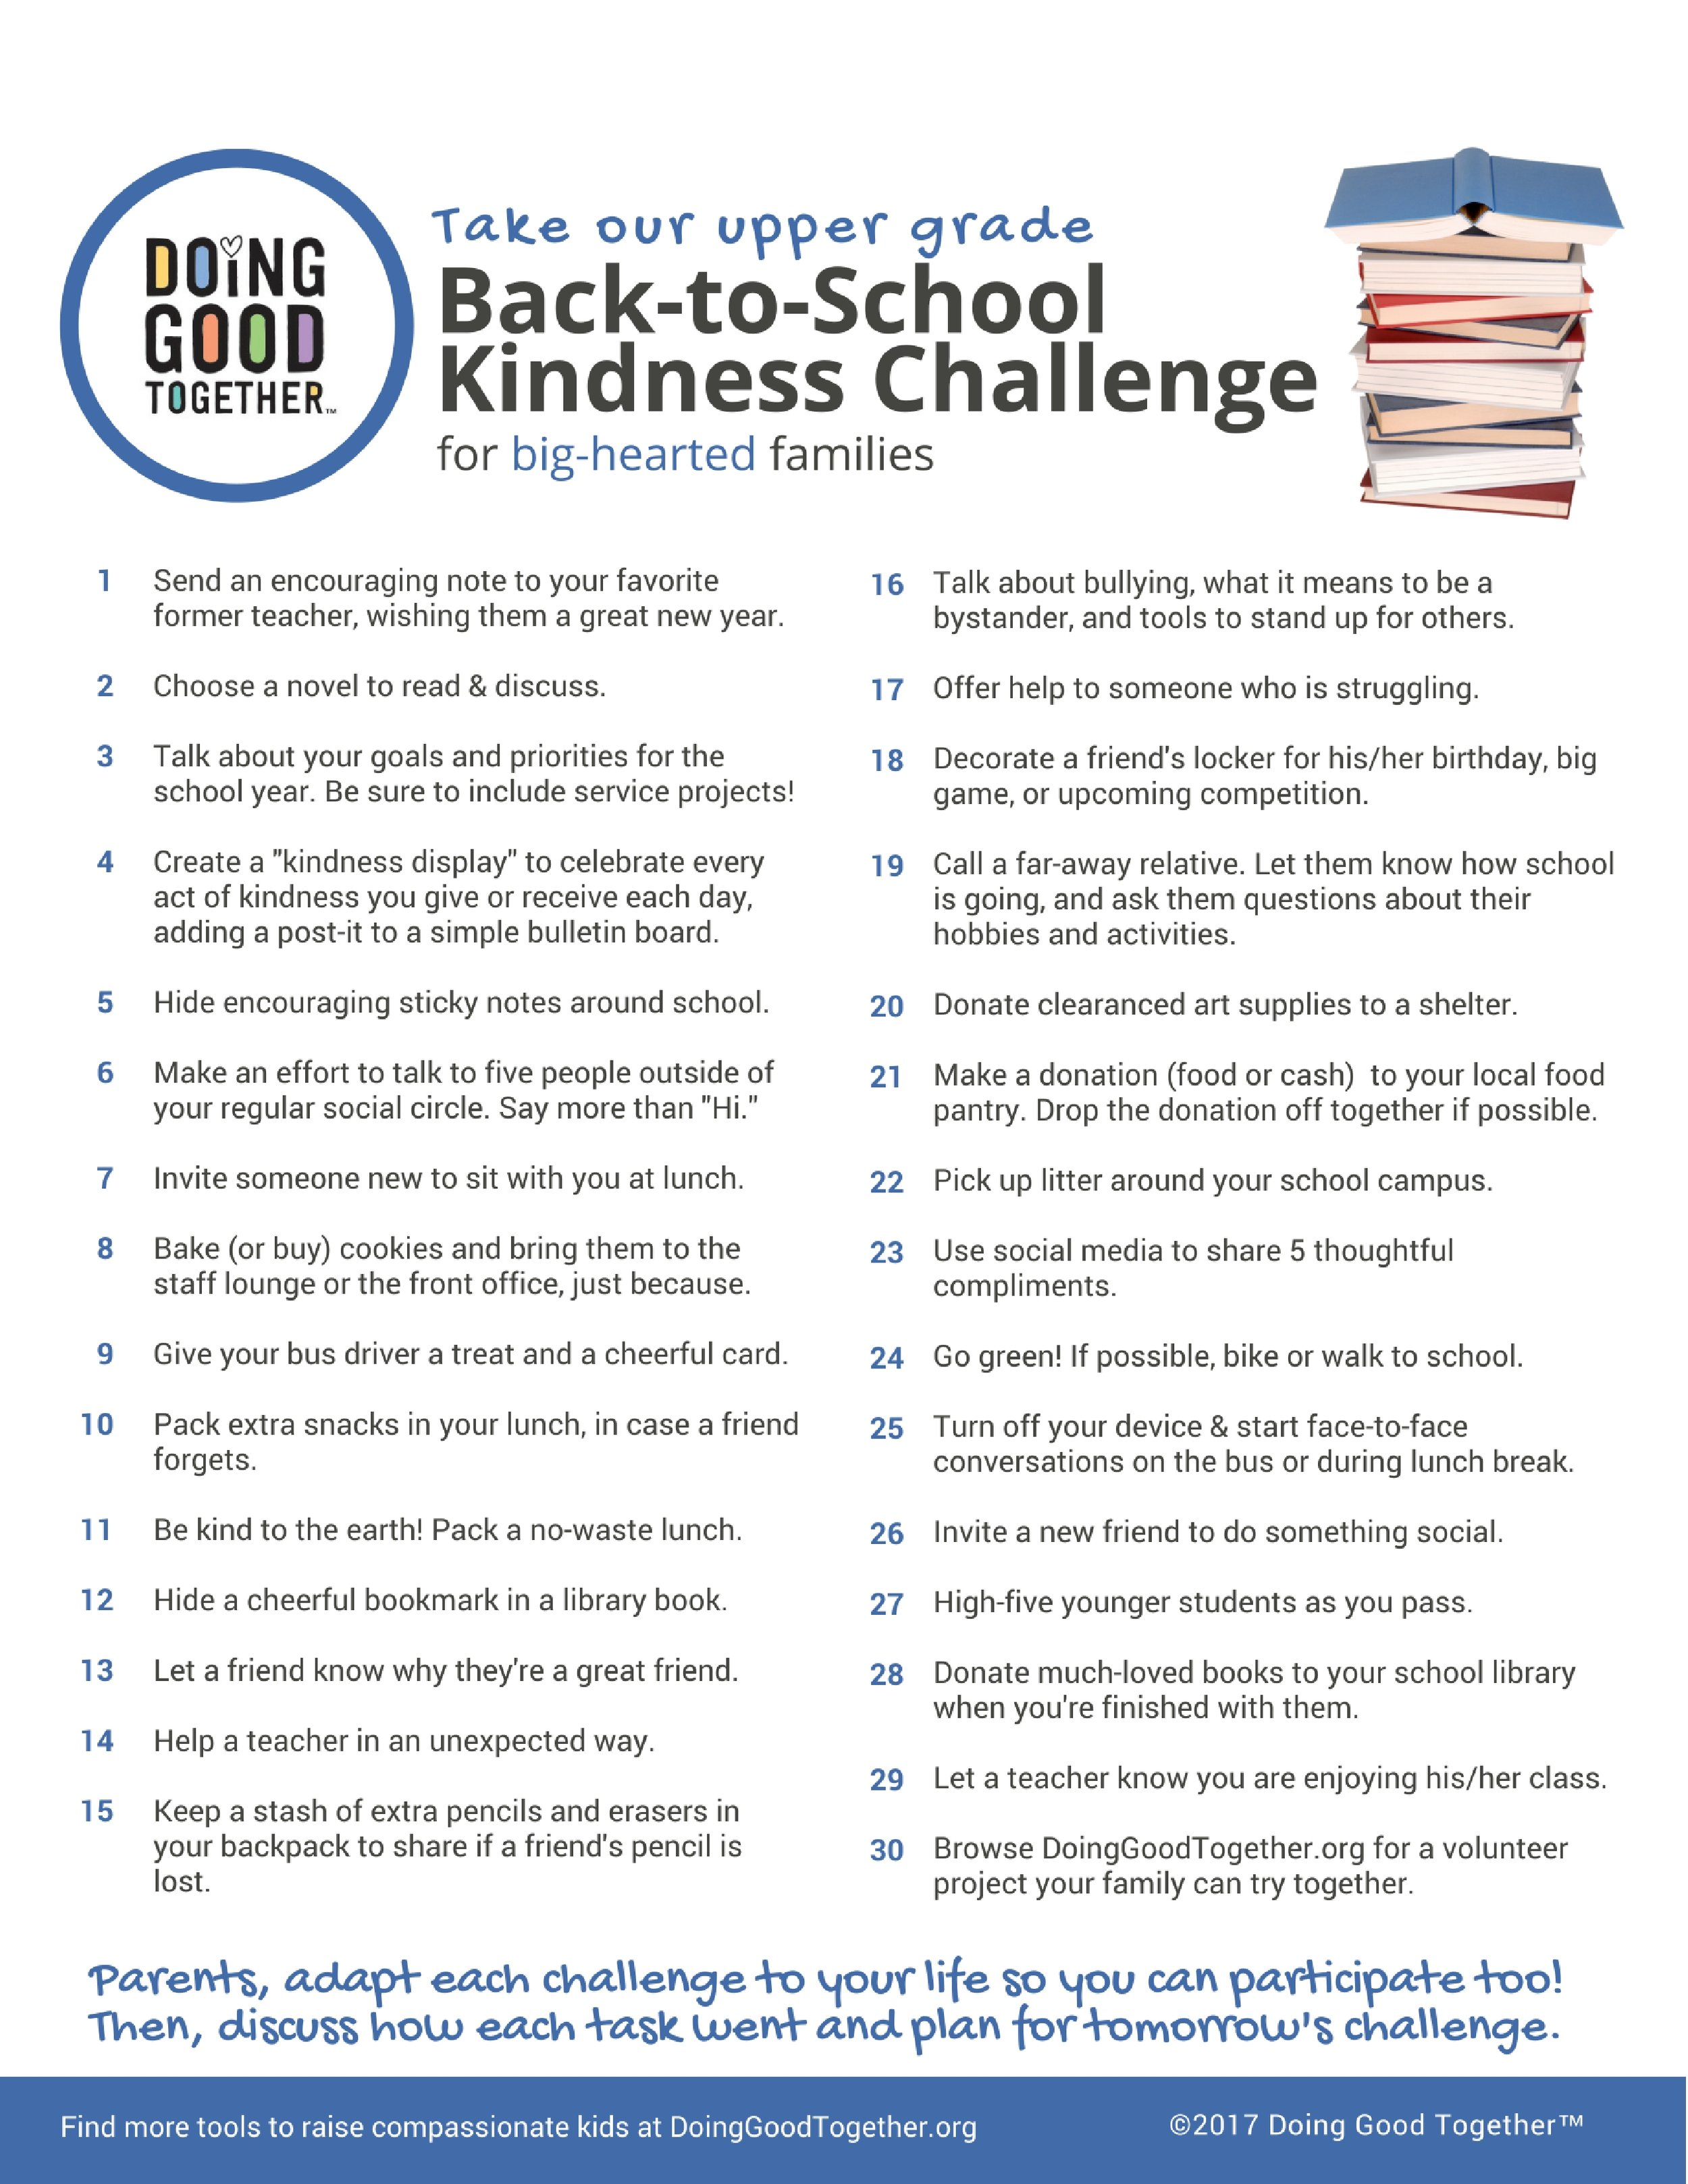 Click to print the upper grade challenge.